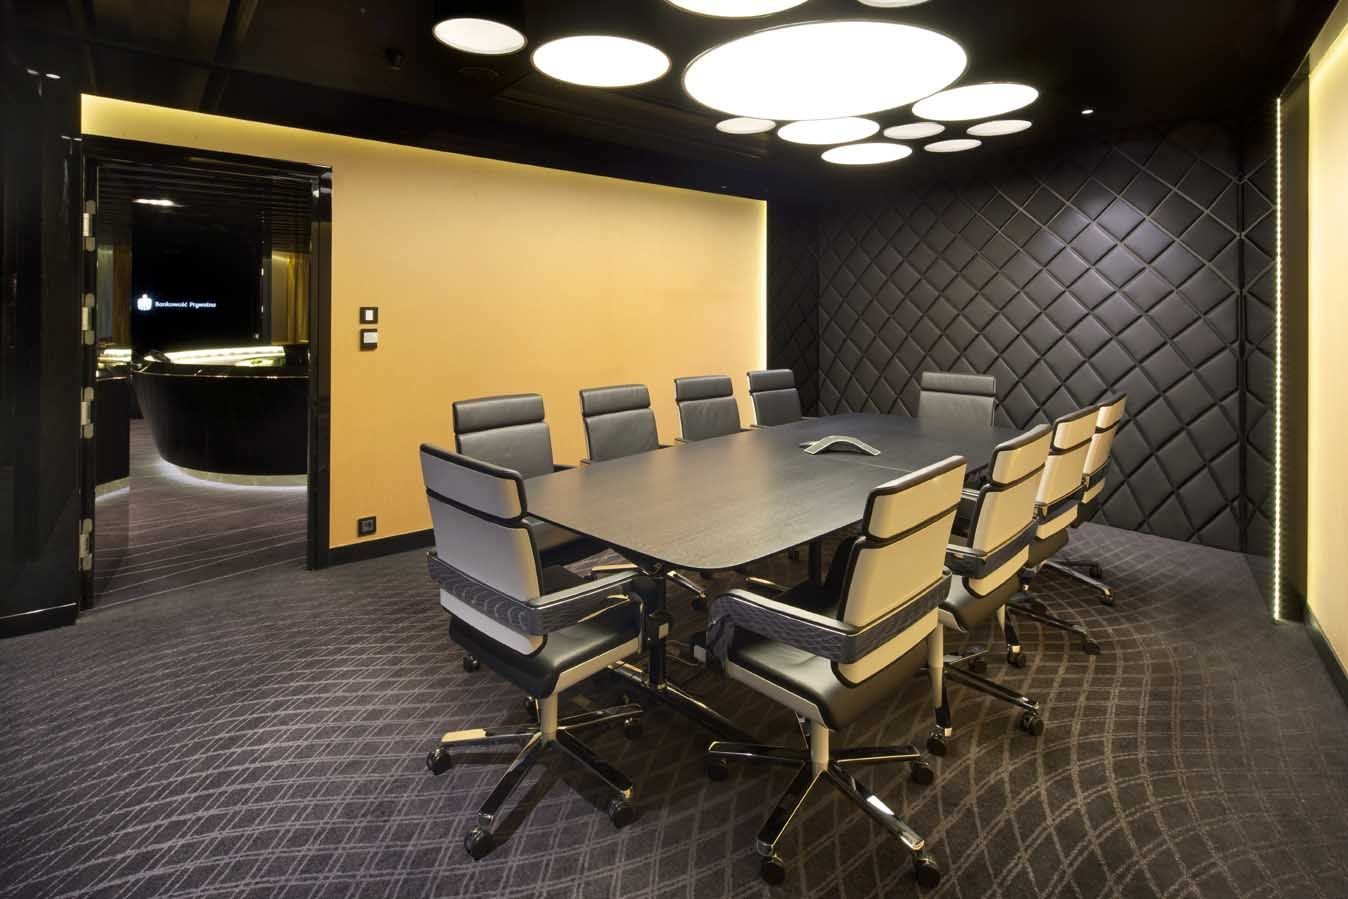 Wondrous 17 Best Images About Office Space Design On Pinterest Conference Largest Home Design Picture Inspirations Pitcheantrous